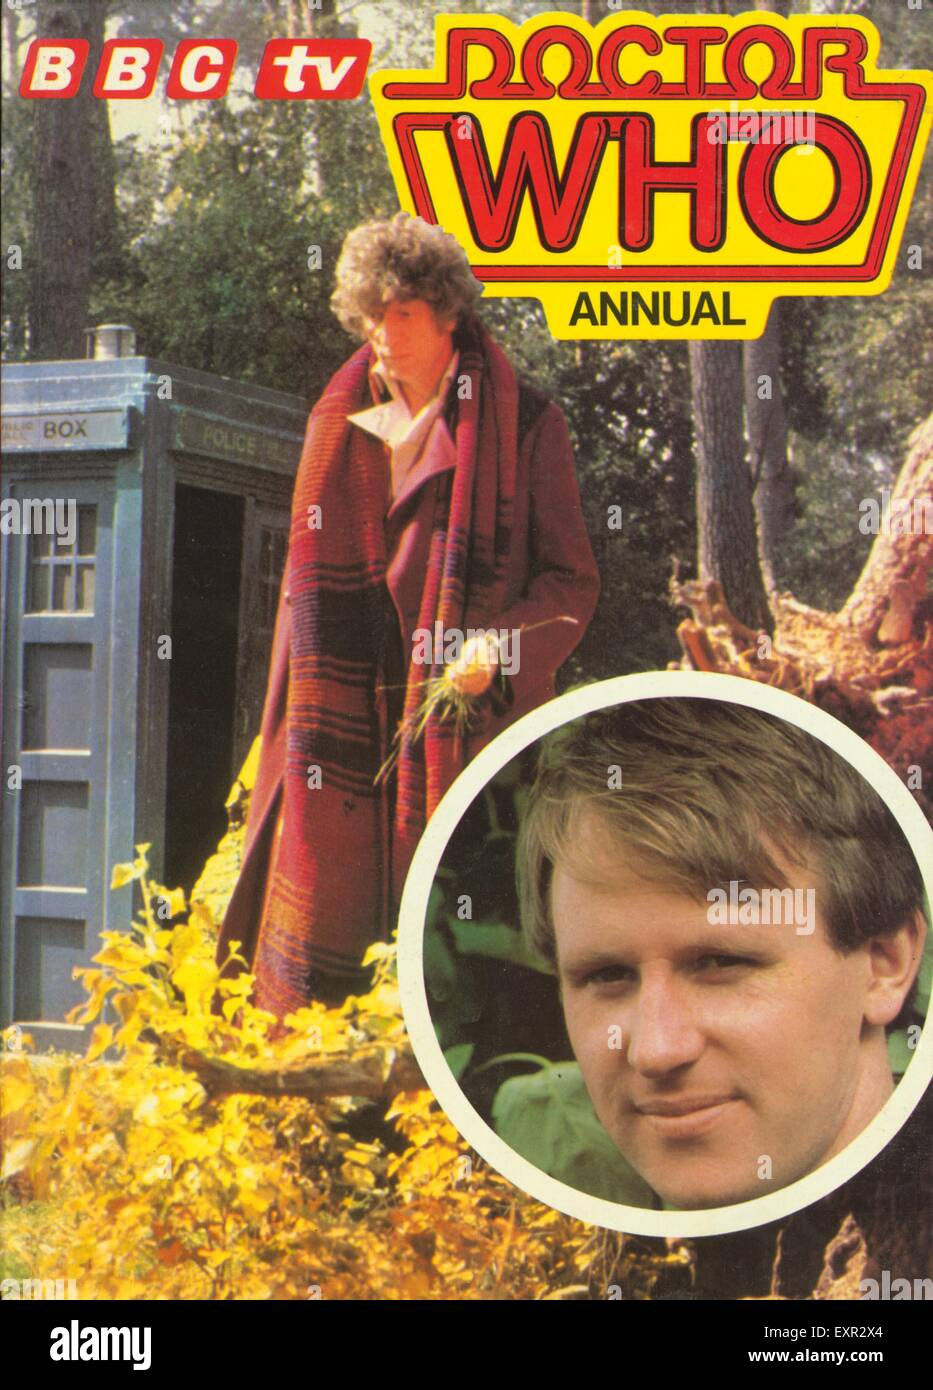 1970s UK Doctor Who Comic/ Annual Cover - Stock Image